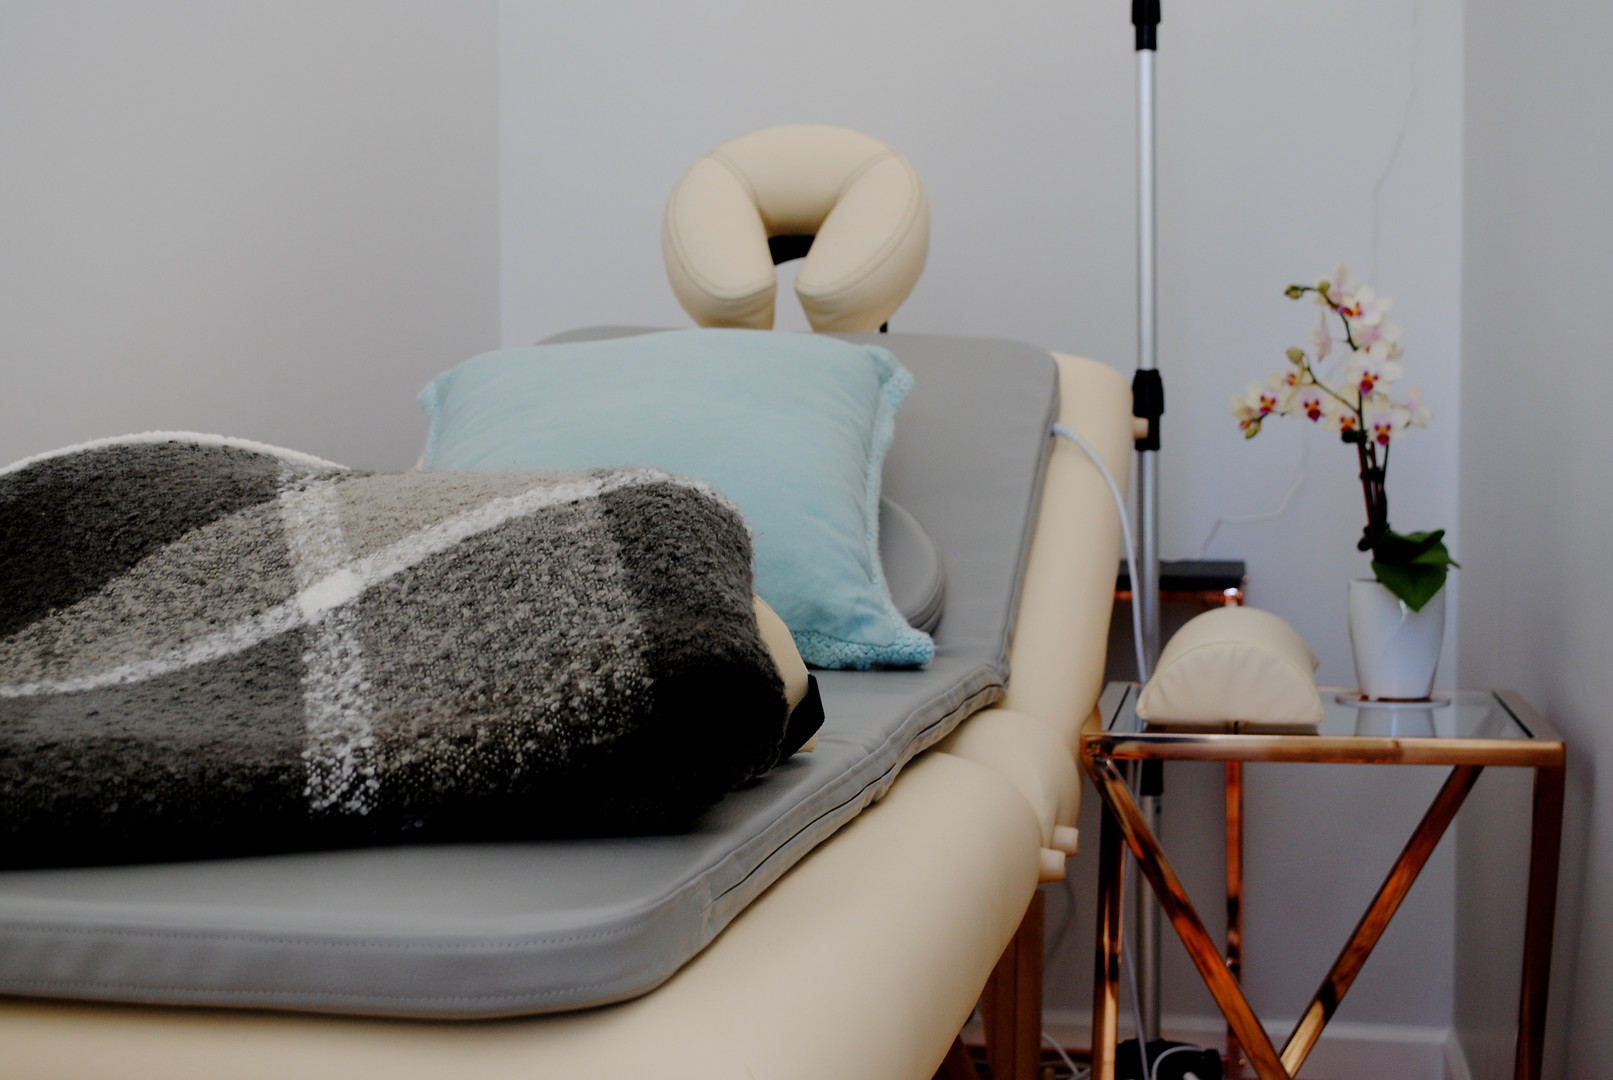 Private IV Therapy Rooms